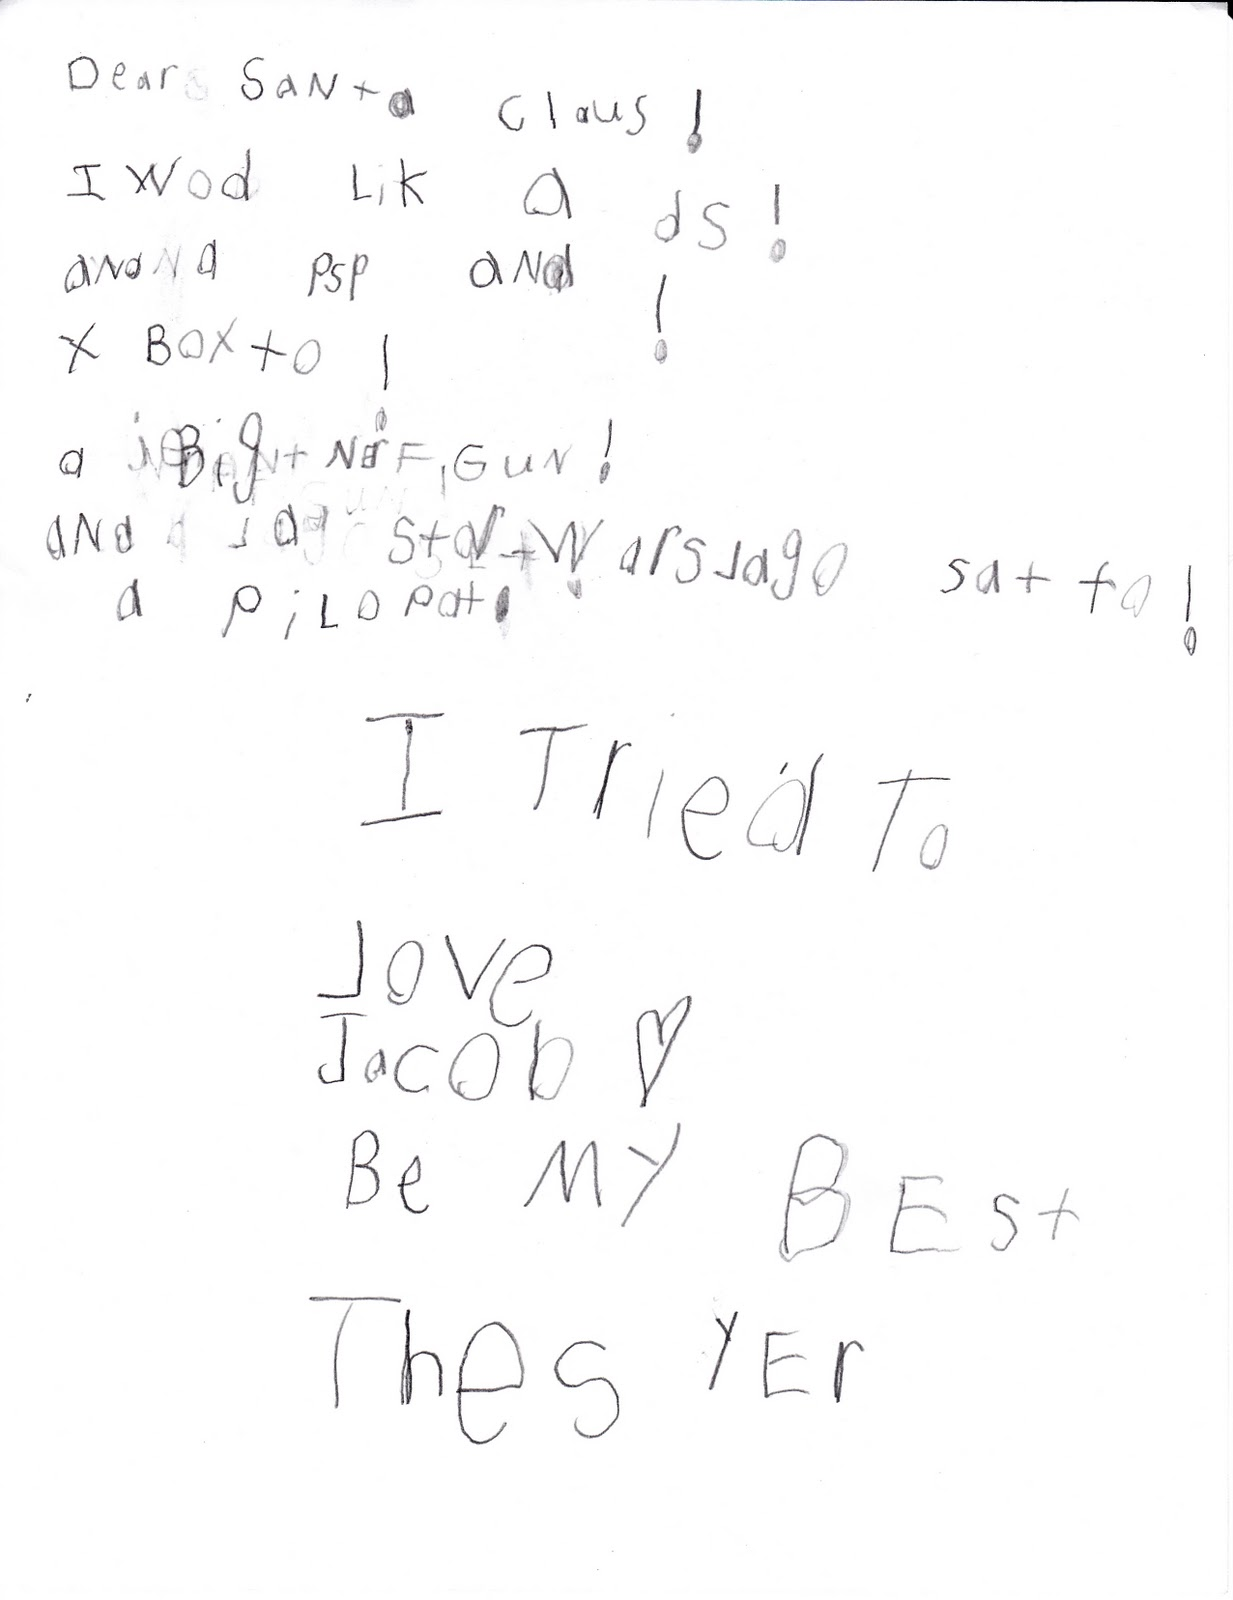 Jason moffitt life and faith jacobs letter to santa 2010 dear santa claus boy he is excited isnt he i would like a ds meaning nintendo ds system and a psp playstation portablepersonal spiritdancerdesigns Image collections